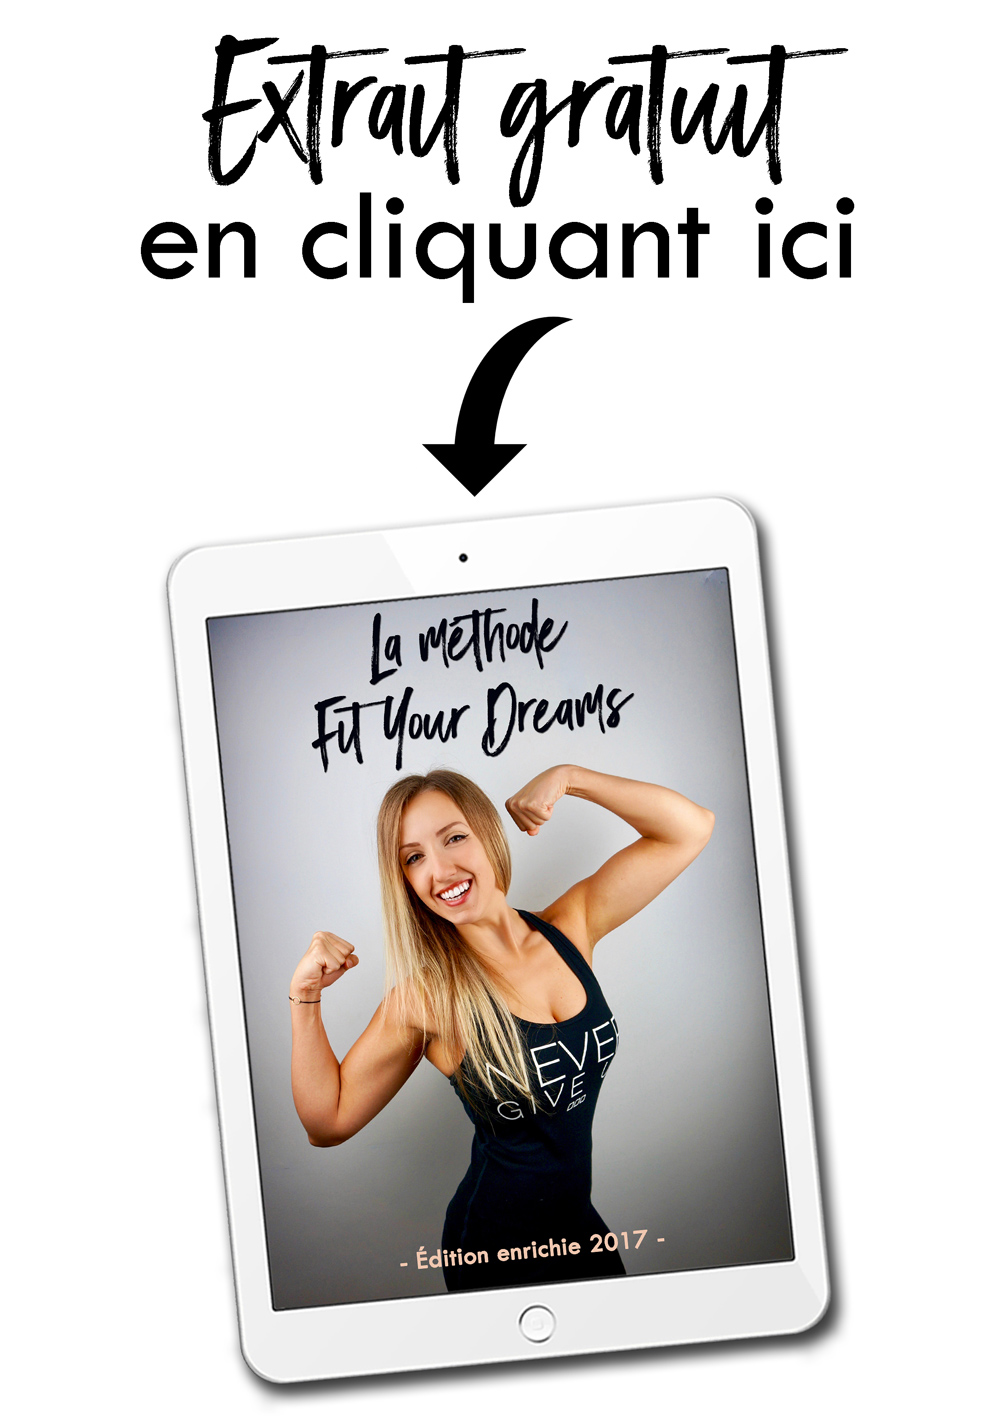 extrait-gratuit-methode-fit-your-dreams